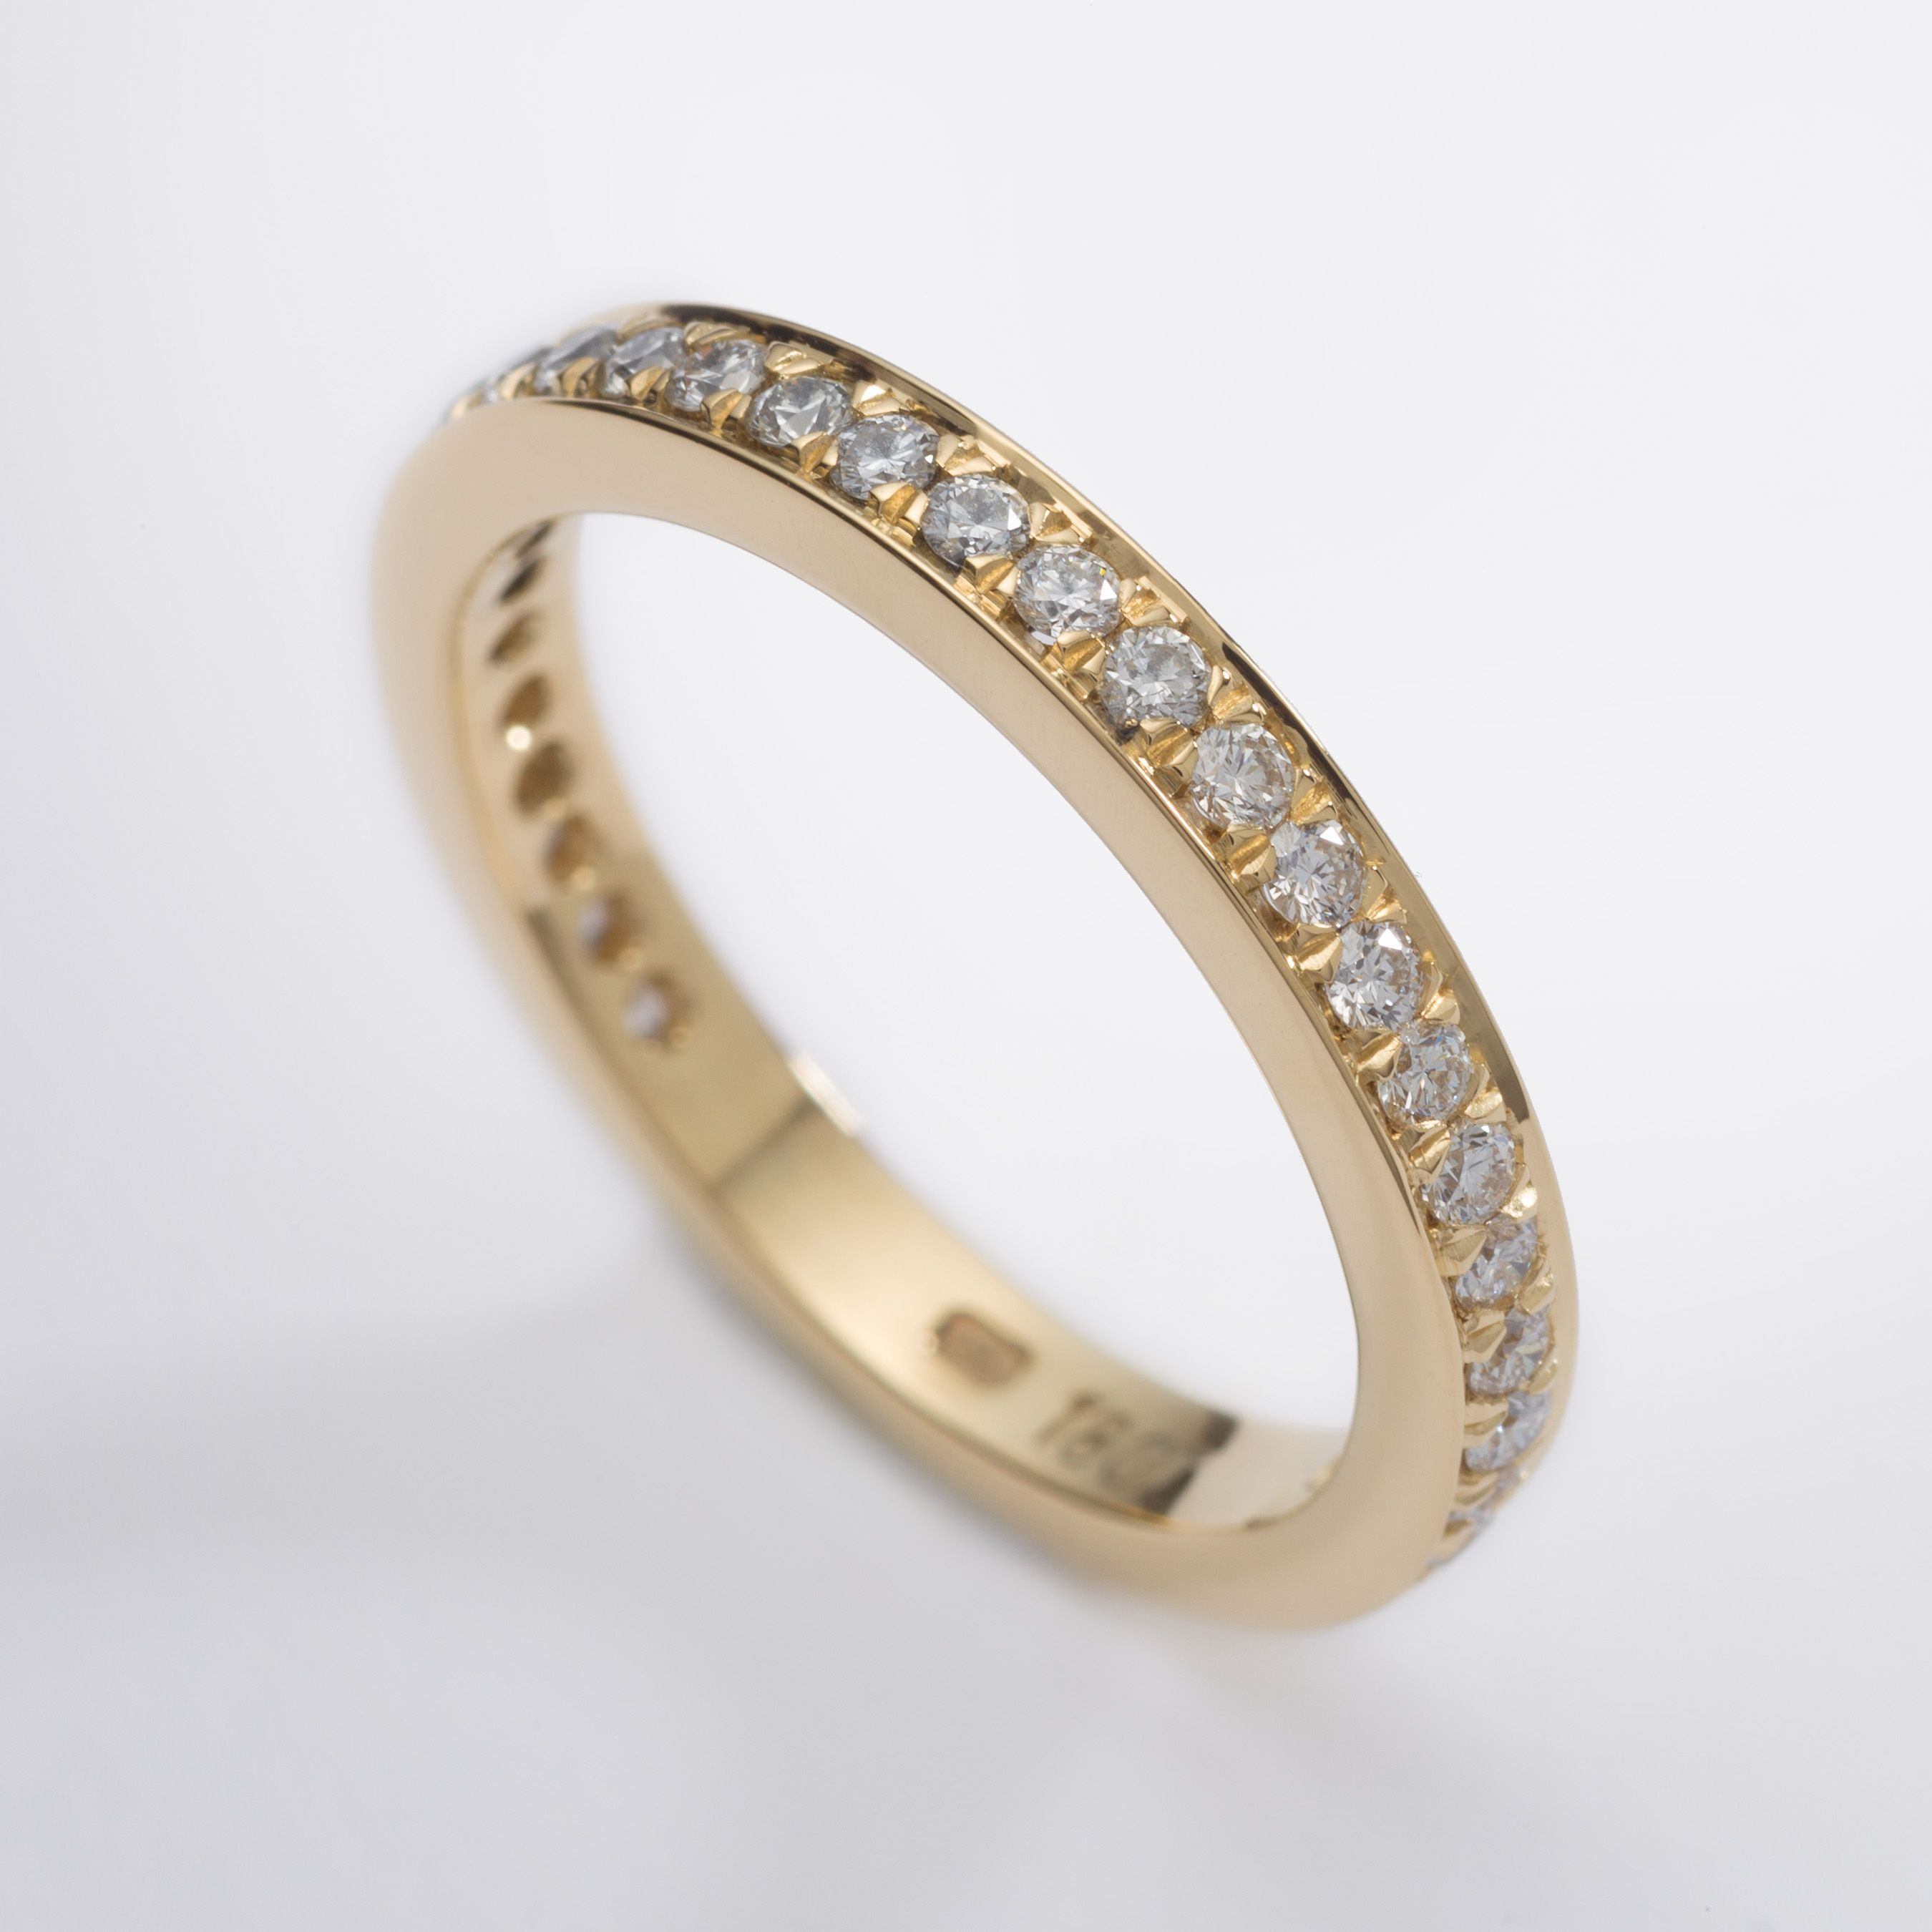 Modern 18ct Yellow Gold Wedding Ring With Pave Set Diamonds Wedding Rings Cork City Yellow Gold Wedding Ring Wedding Rings Wedding Ring Designs